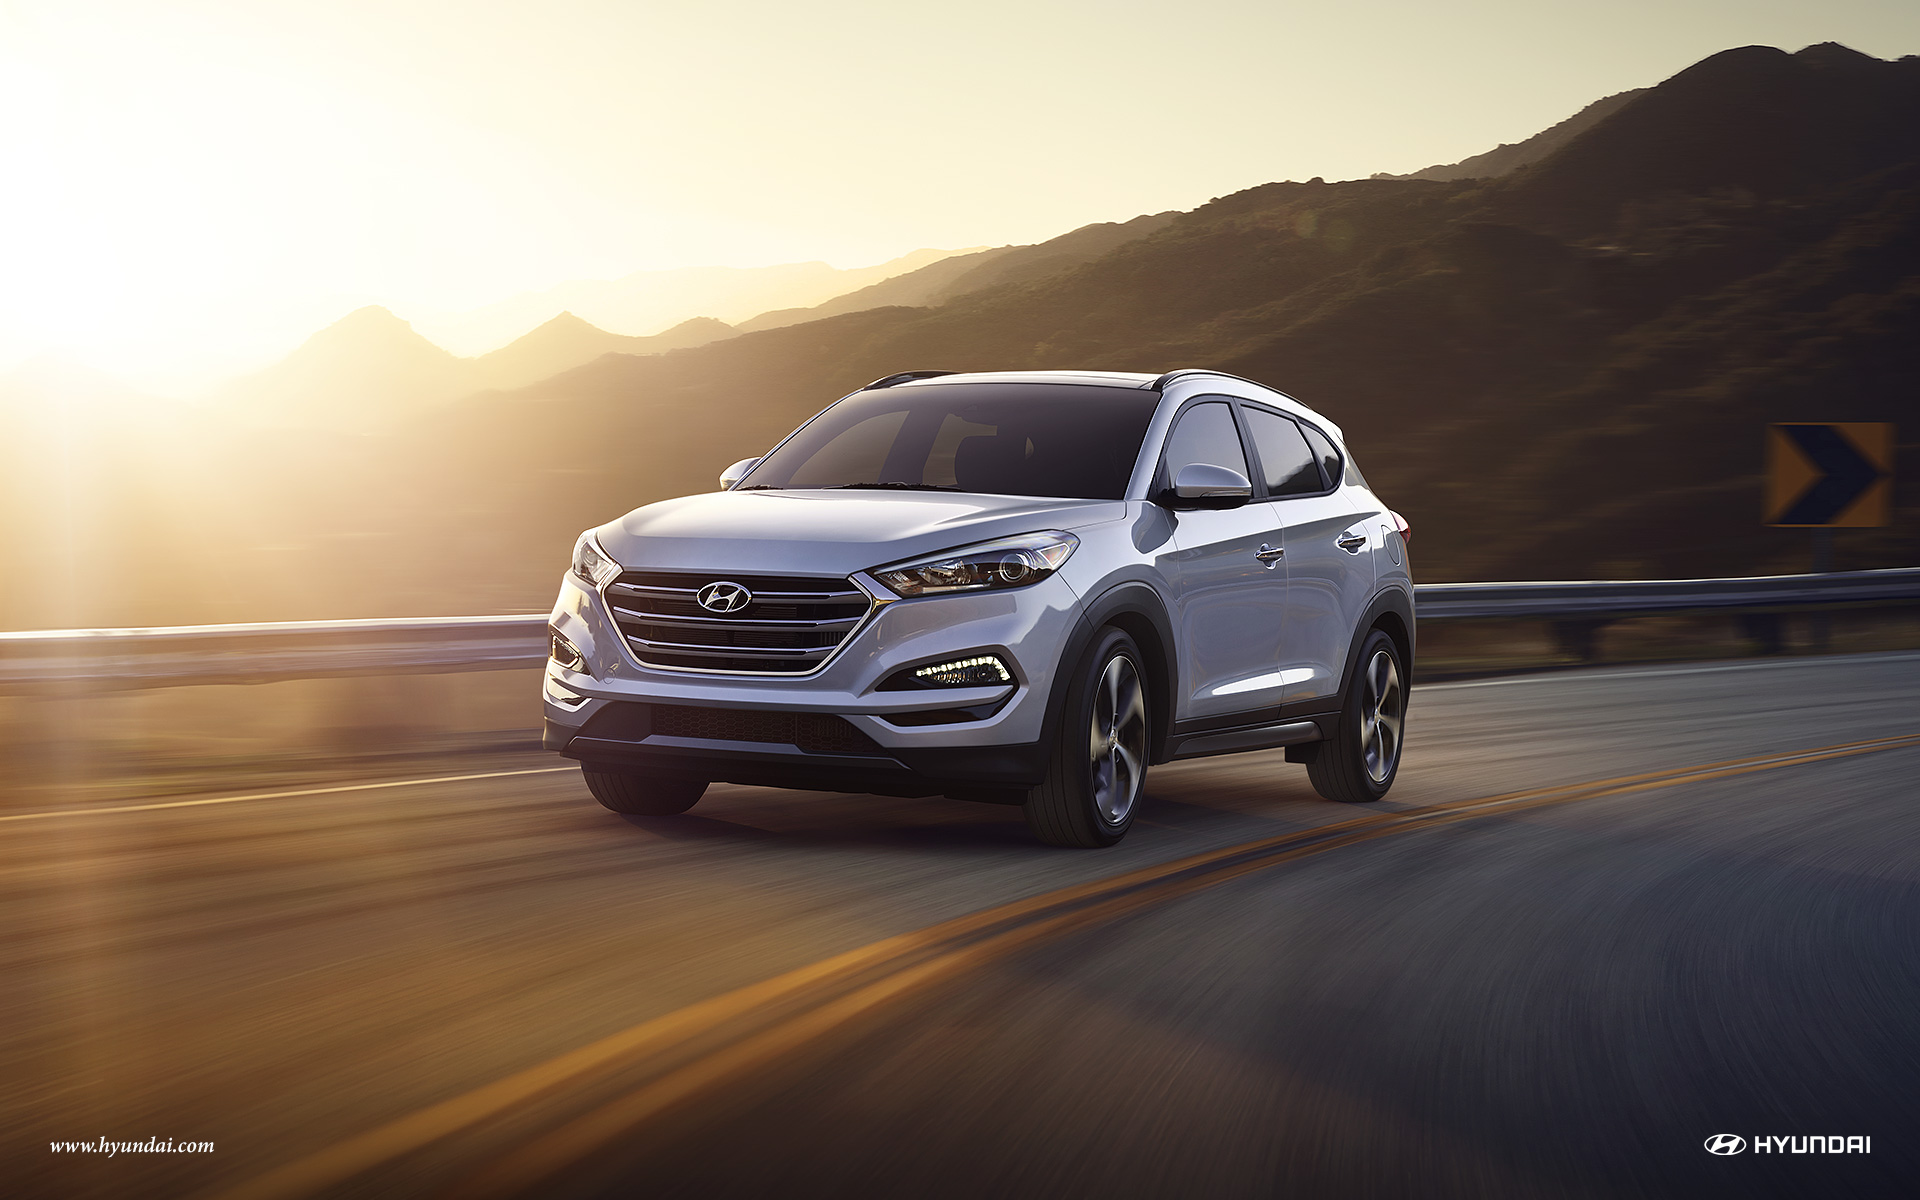 2018 Hyundai Tucson Trim Levels in Centennial Colorado